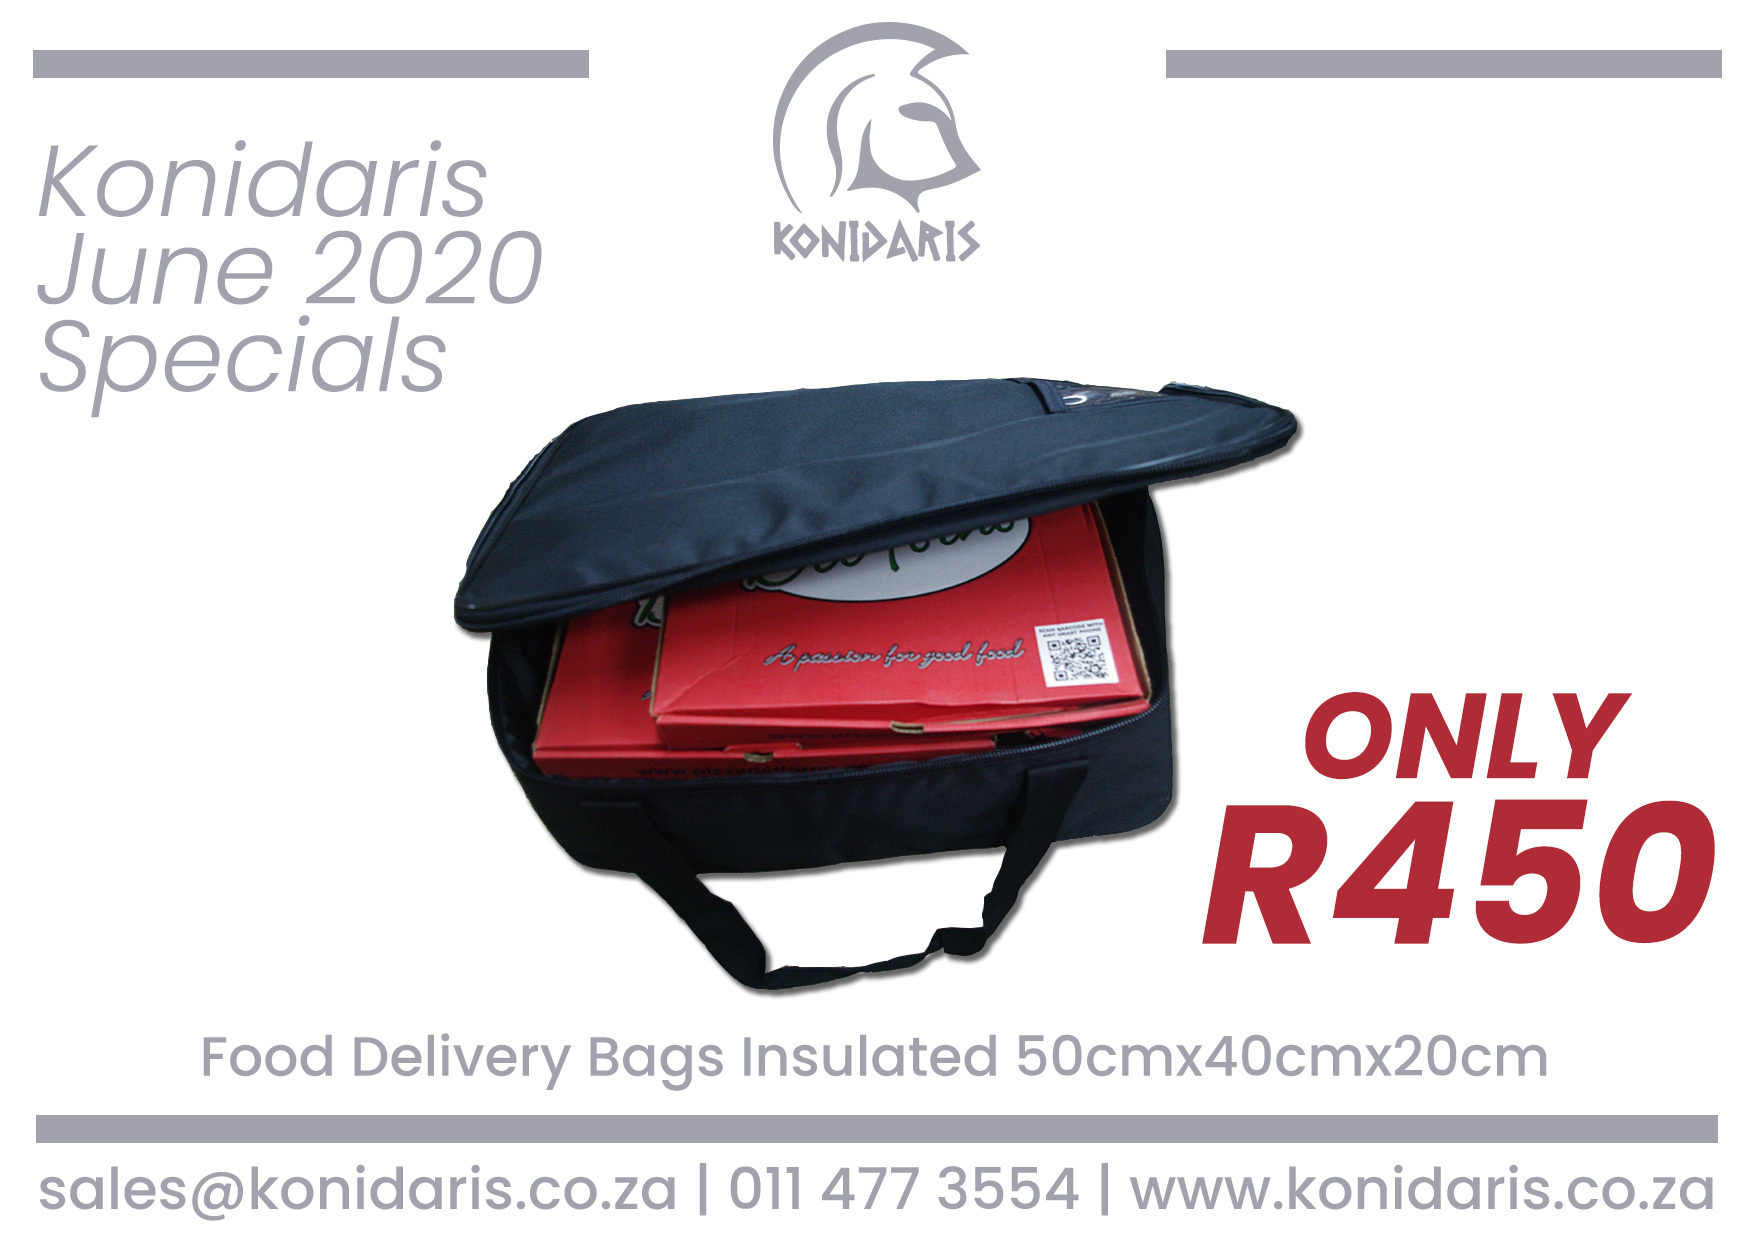 Food Delivery Bags Insulated ( 50cm x 40cm x 20cm)